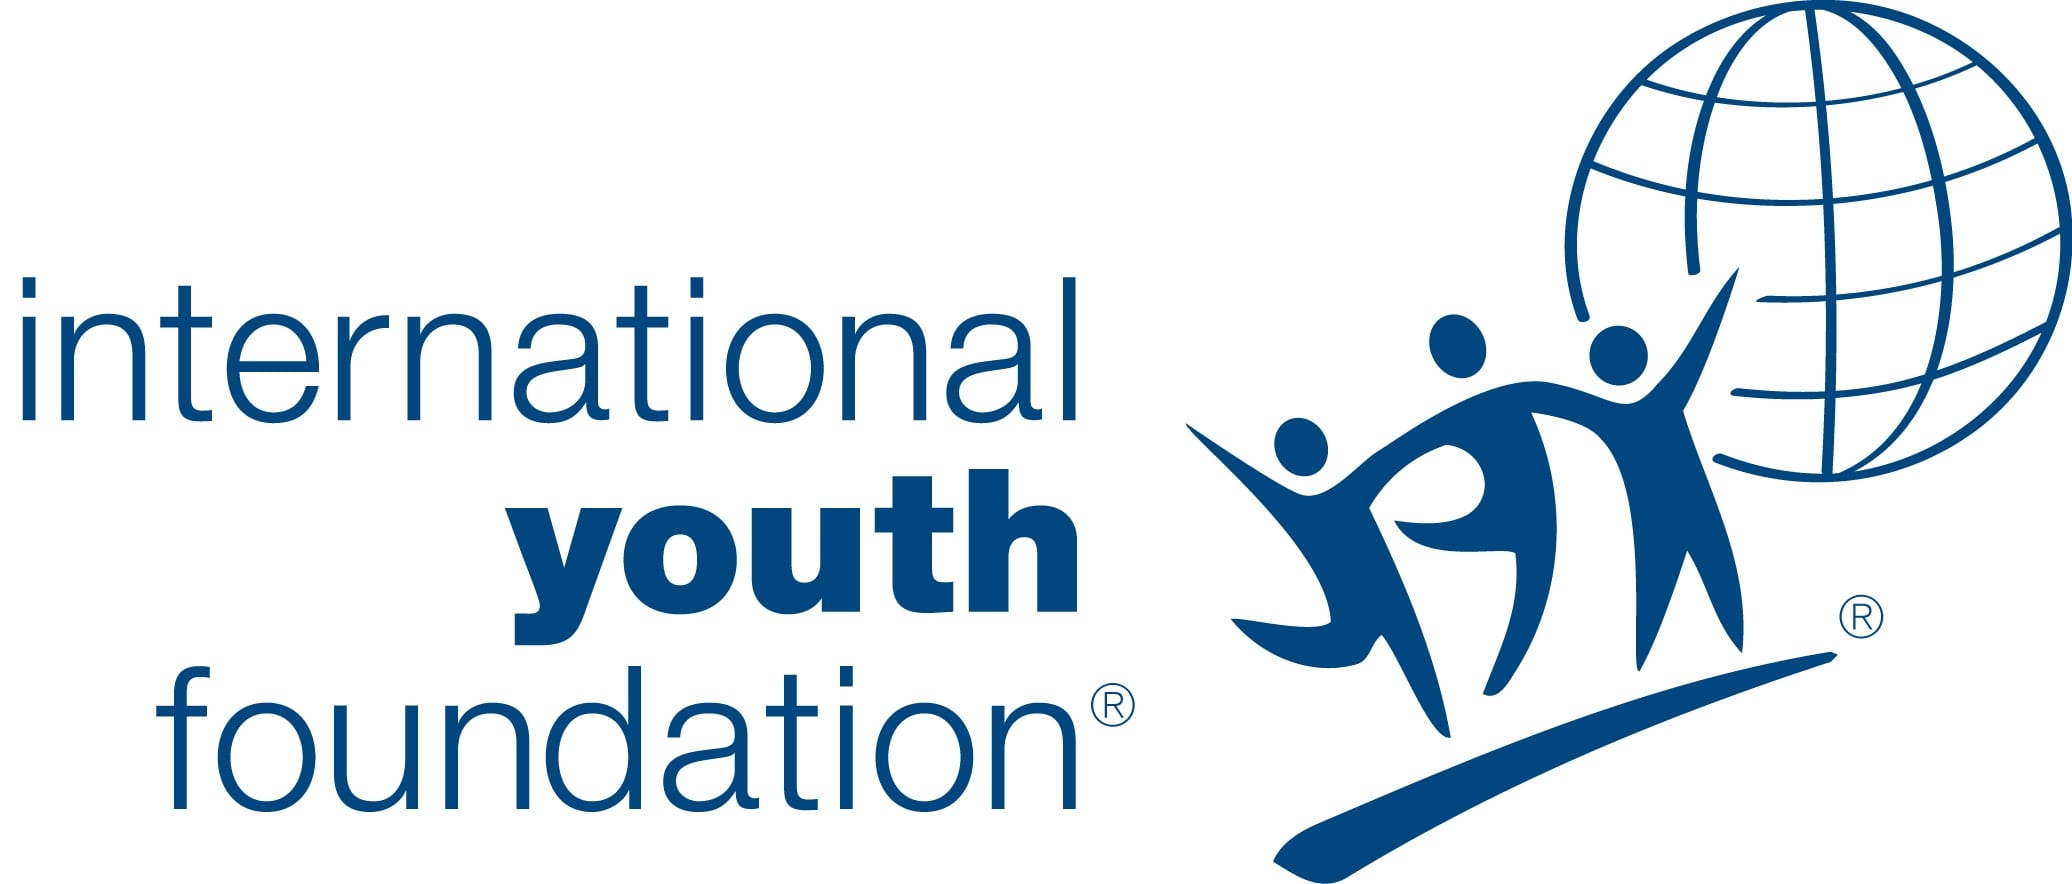 International Youth Foundation (IYF) collaboration. International Youth Foundation (IYF) success story. Vera Solutions Client. Vera Solutions Success. Vera Solutions data management. Example of data management. Example of Impact Analysis. Example of Performance Management. Monitoring and Evaluation Examples. Vera Solutions Client Success. Vera Solutions Collaboration. Vera Solutions Impact Management Client.